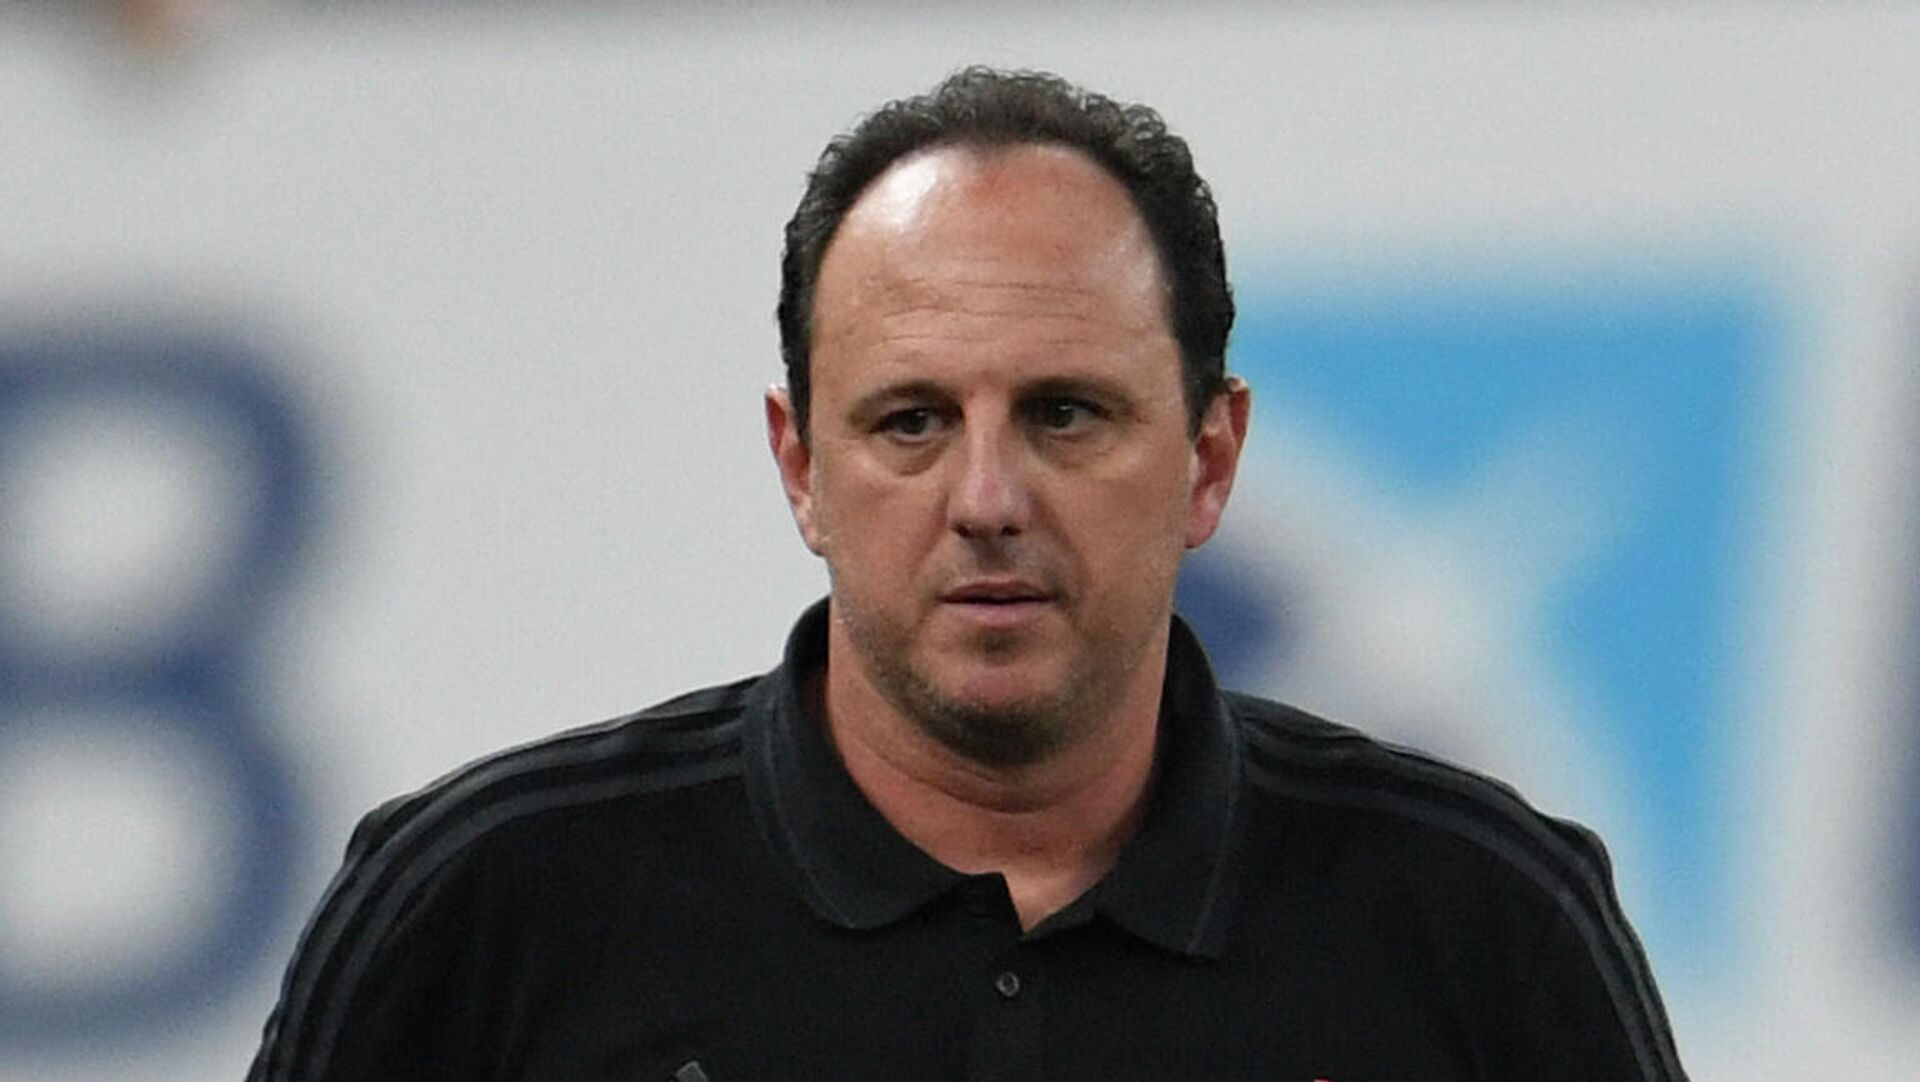 Flamengo's coach Rogerio Ceni gestures during the Carioca Championship 2021 final match agaist Fluminense at the Maracana stadium, in Rio de Janeiro, Brazil, on May 22, 2021, which is played behind closed doors as a mesure to combat COVID-19 coronavirus pandemic. (Photo by MAURO PIMENTEL / AFP) - РИА Новости, 1920, 14.10.2021